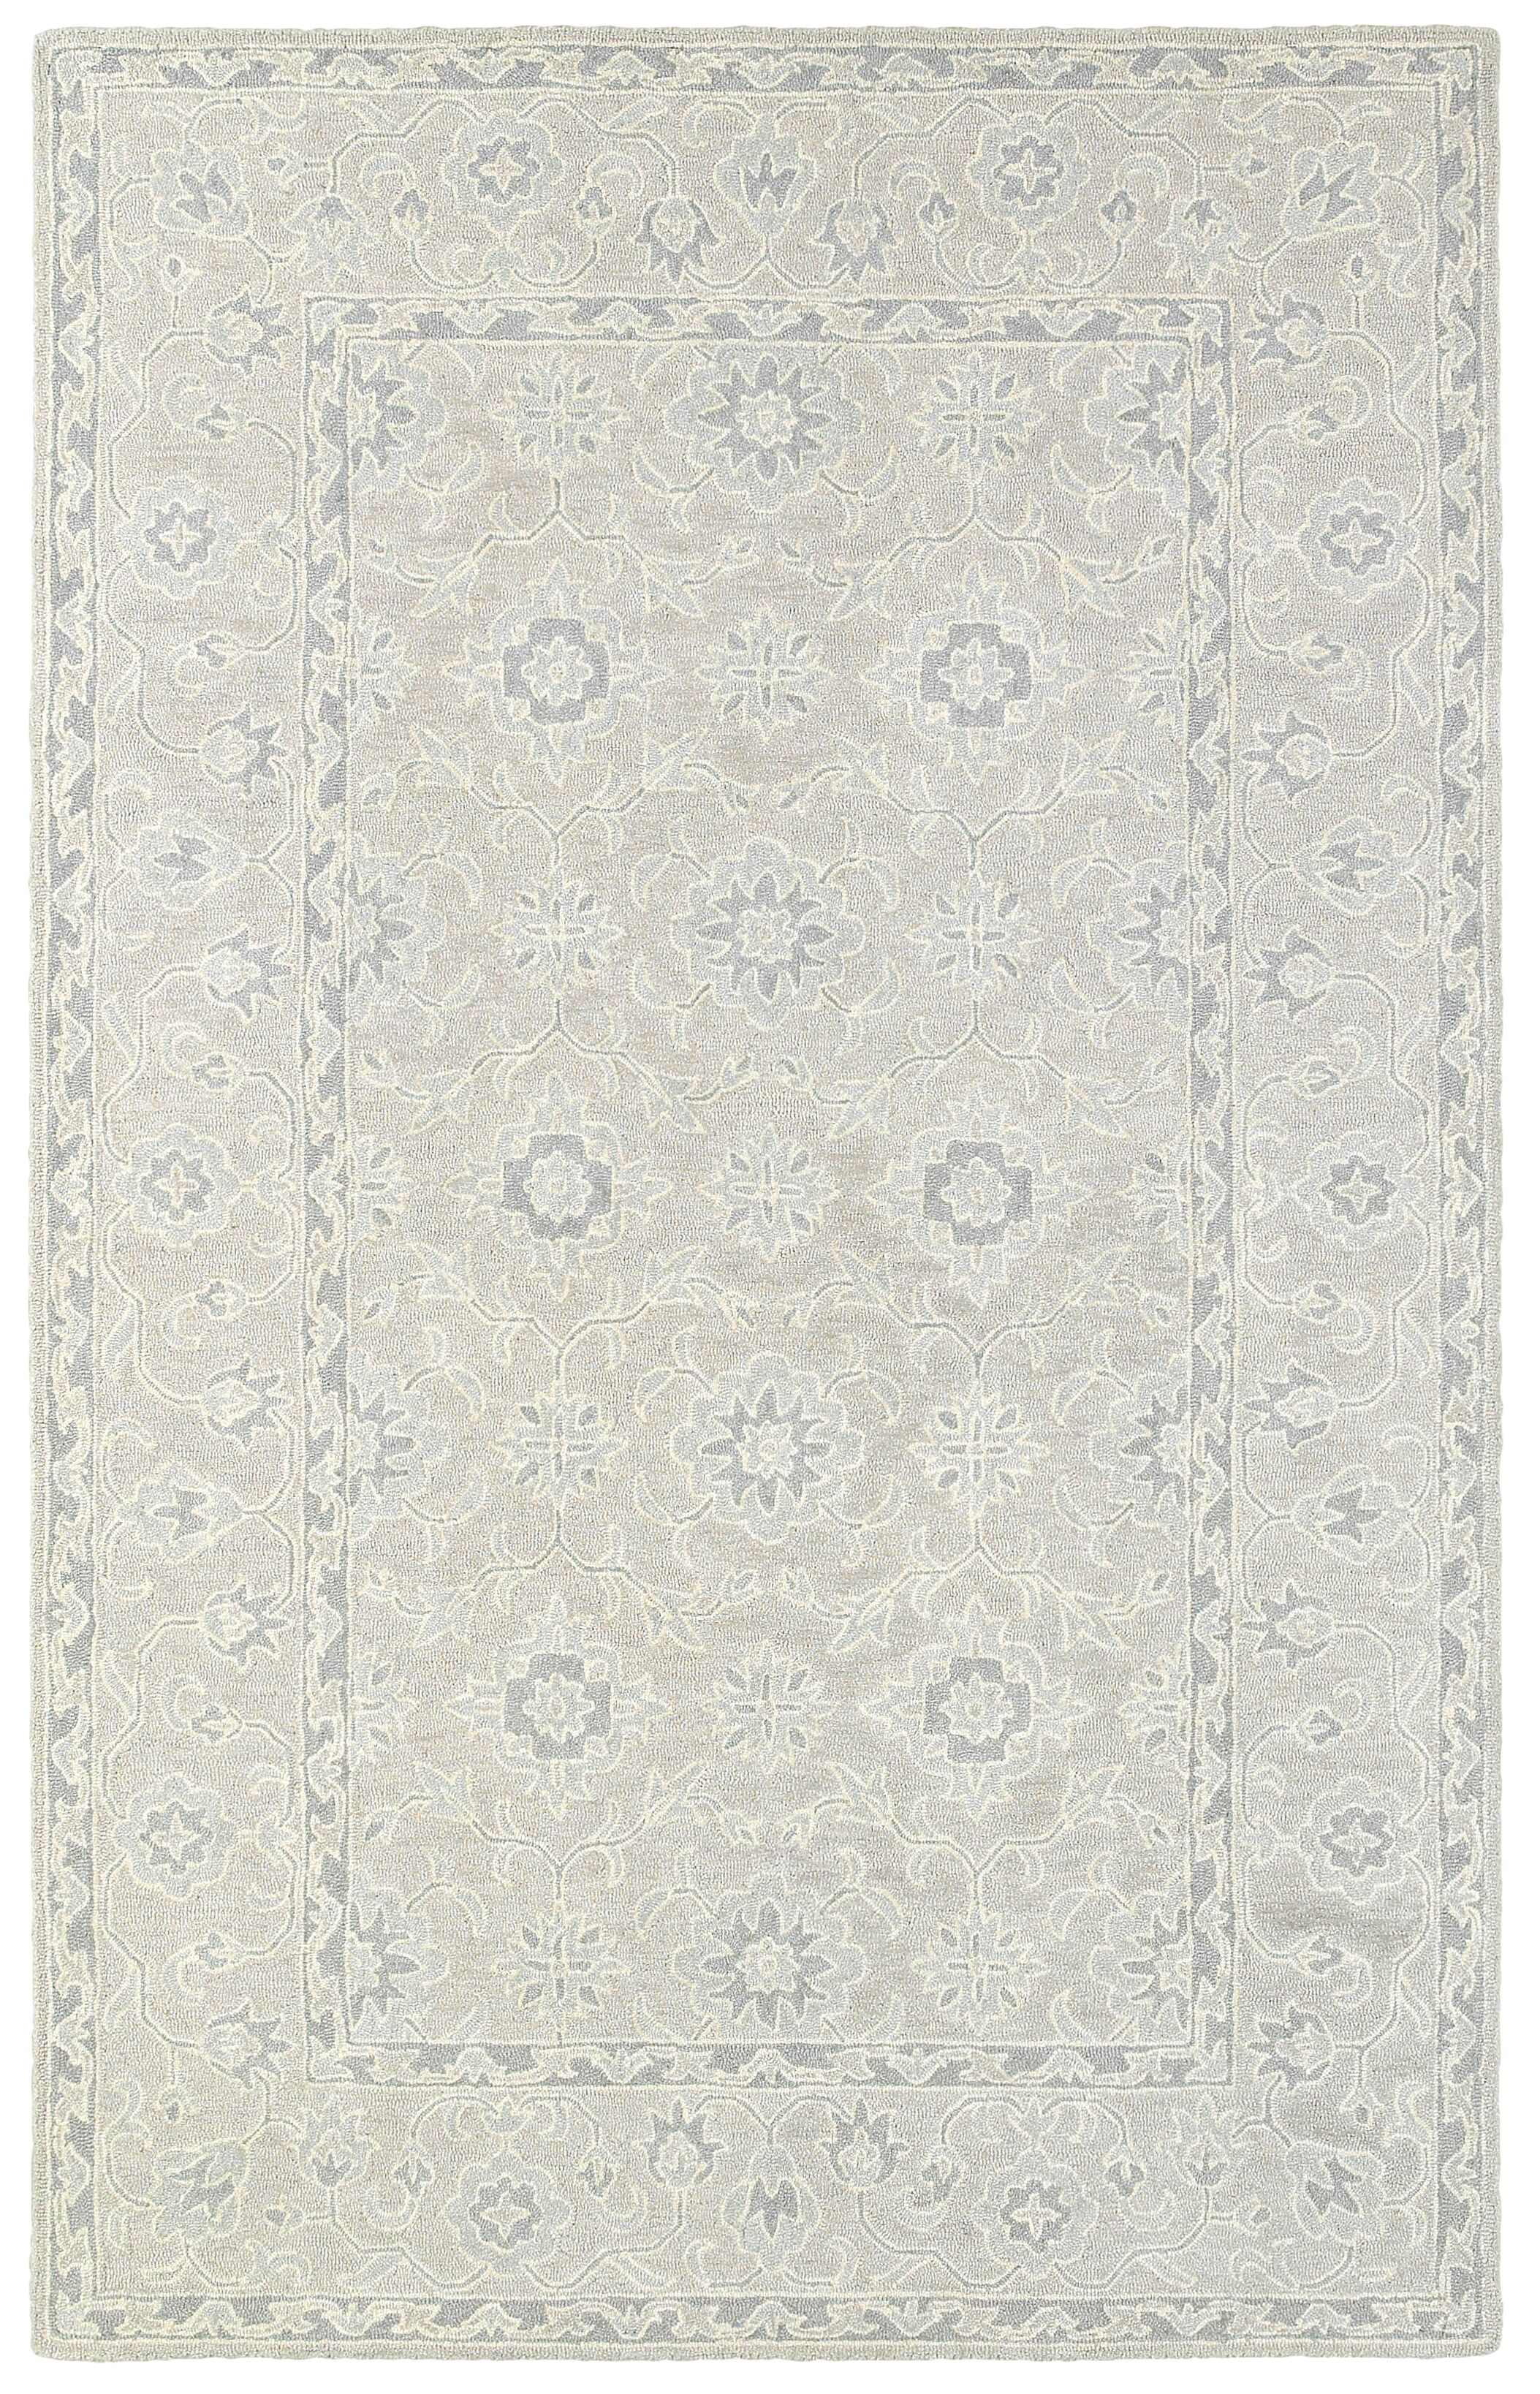 Reveles Hand-Tufted Oriental Beige/Gray Area Rug Rug Size: Rectangle 10' x 12'11